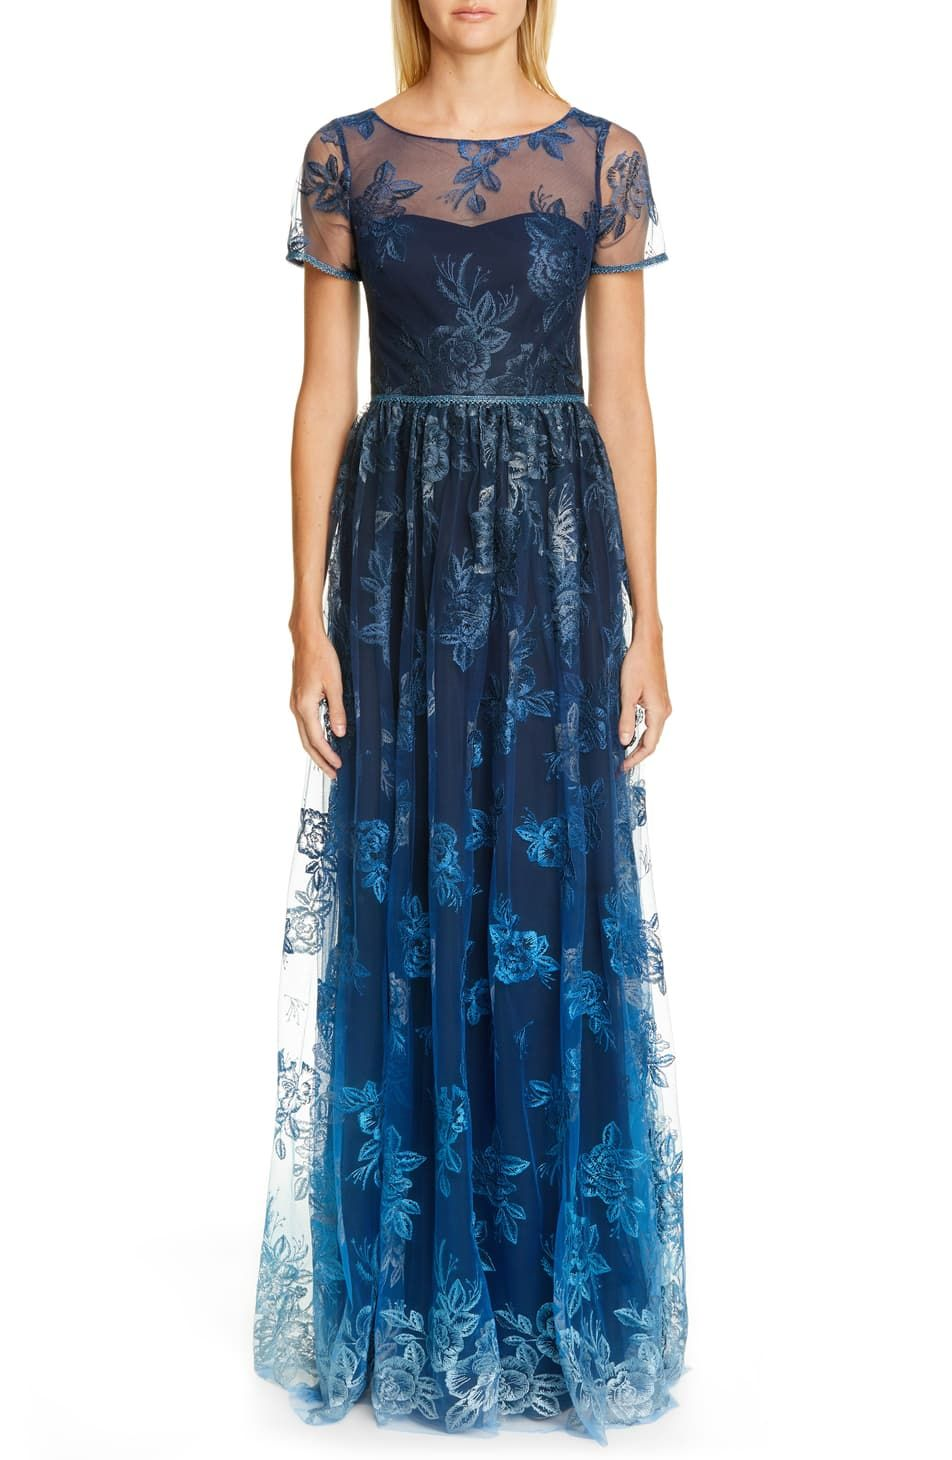 Nordstrom Online In Store Shoes Jewelry Clothing Makeup Dresses Stylish Formal Dresses Embroidered Gown Gowns [ 1460 x 952 Pixel ]